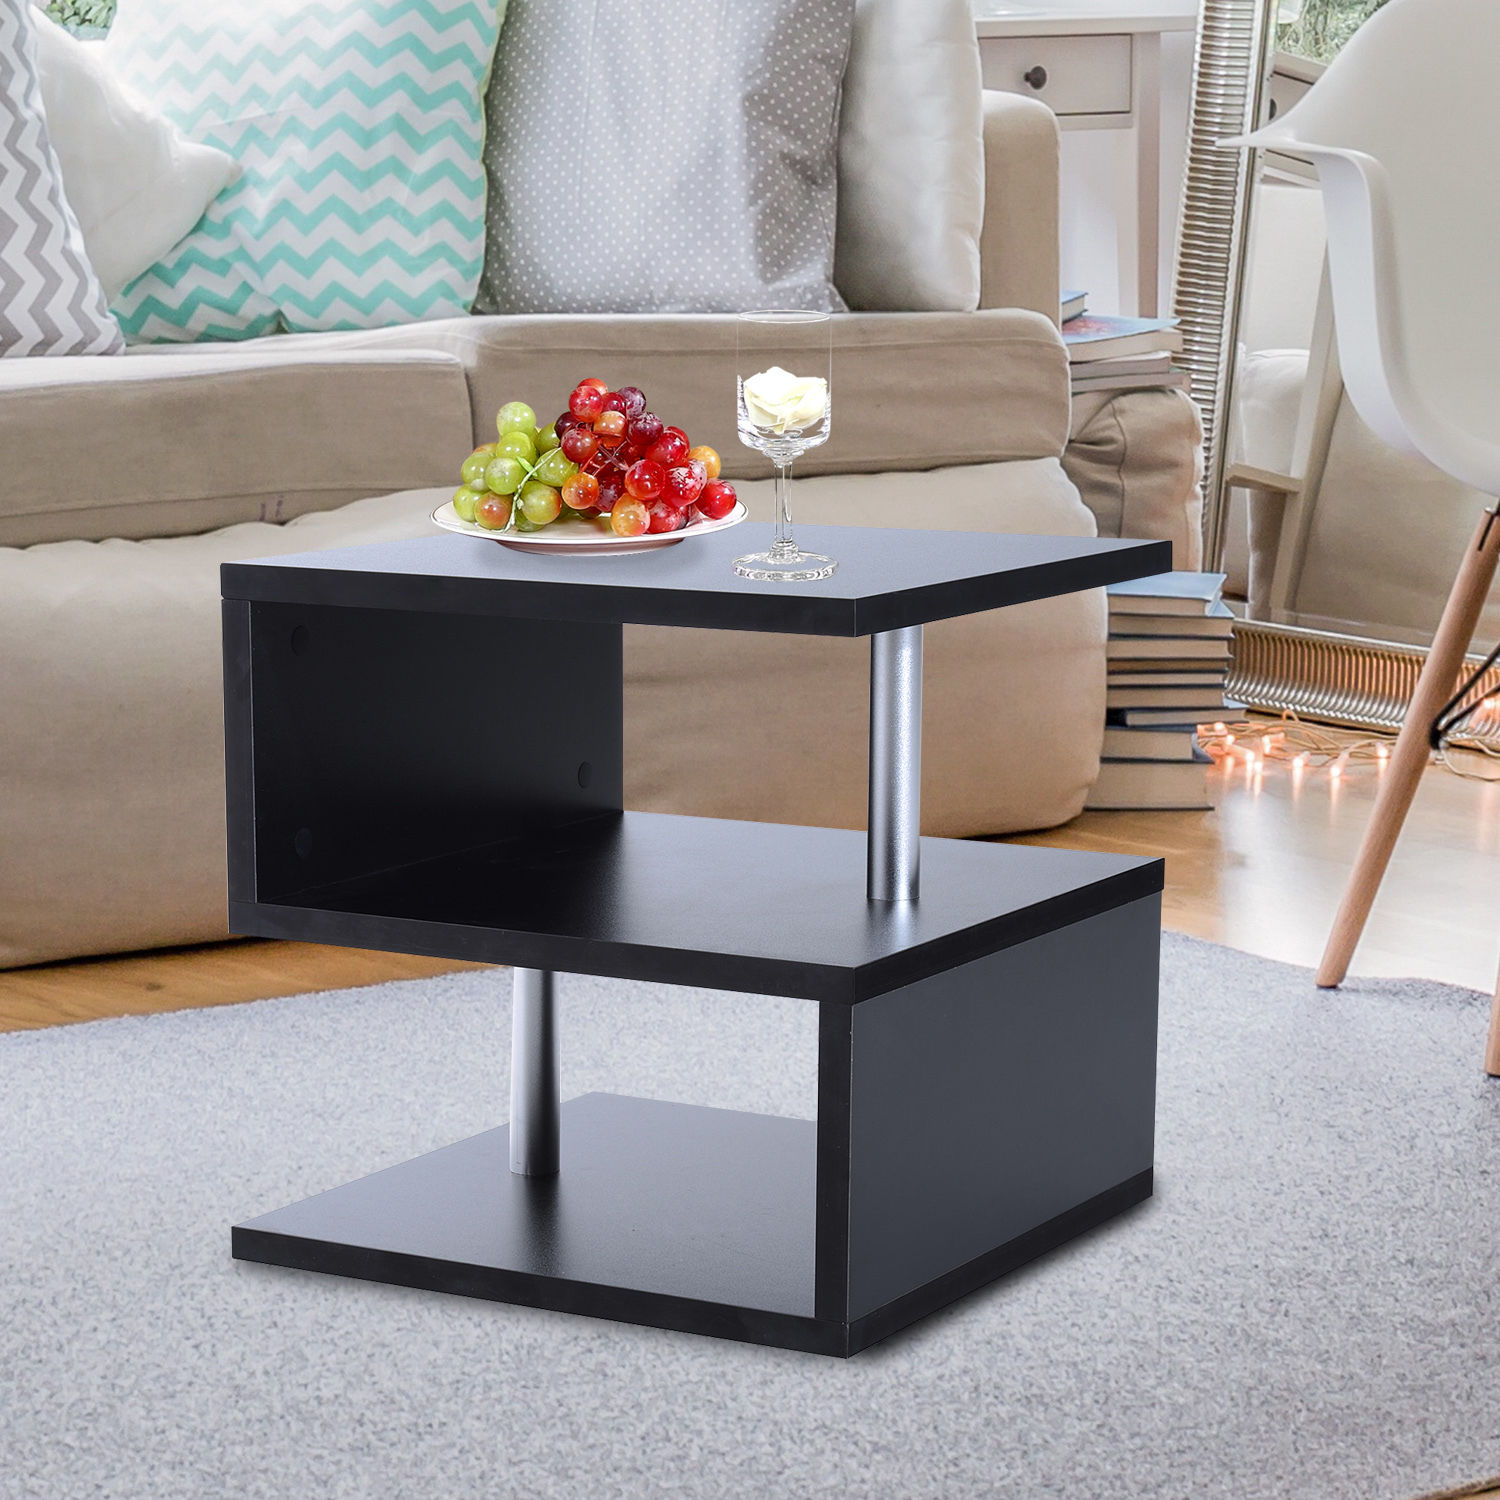 Coffee Side Tables Living Room Furniture: 2 Tier Side End Coffee Table Storage Shelves Sofa Couch